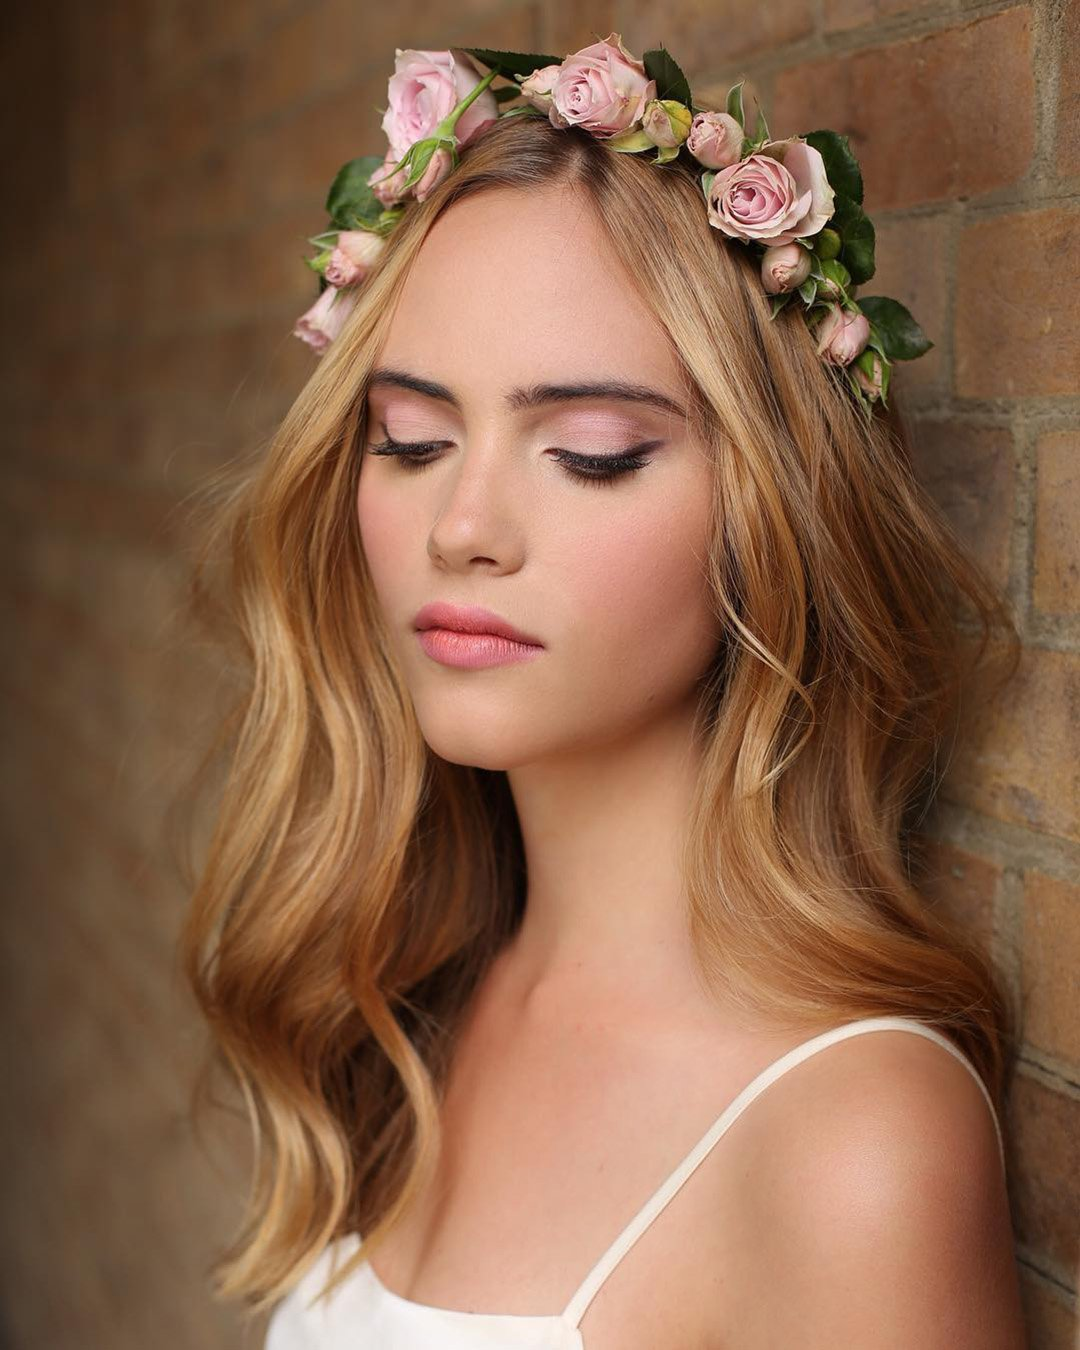 boho wedding makeup natural pink shades with arrows and pink lips kristinagasperasmua